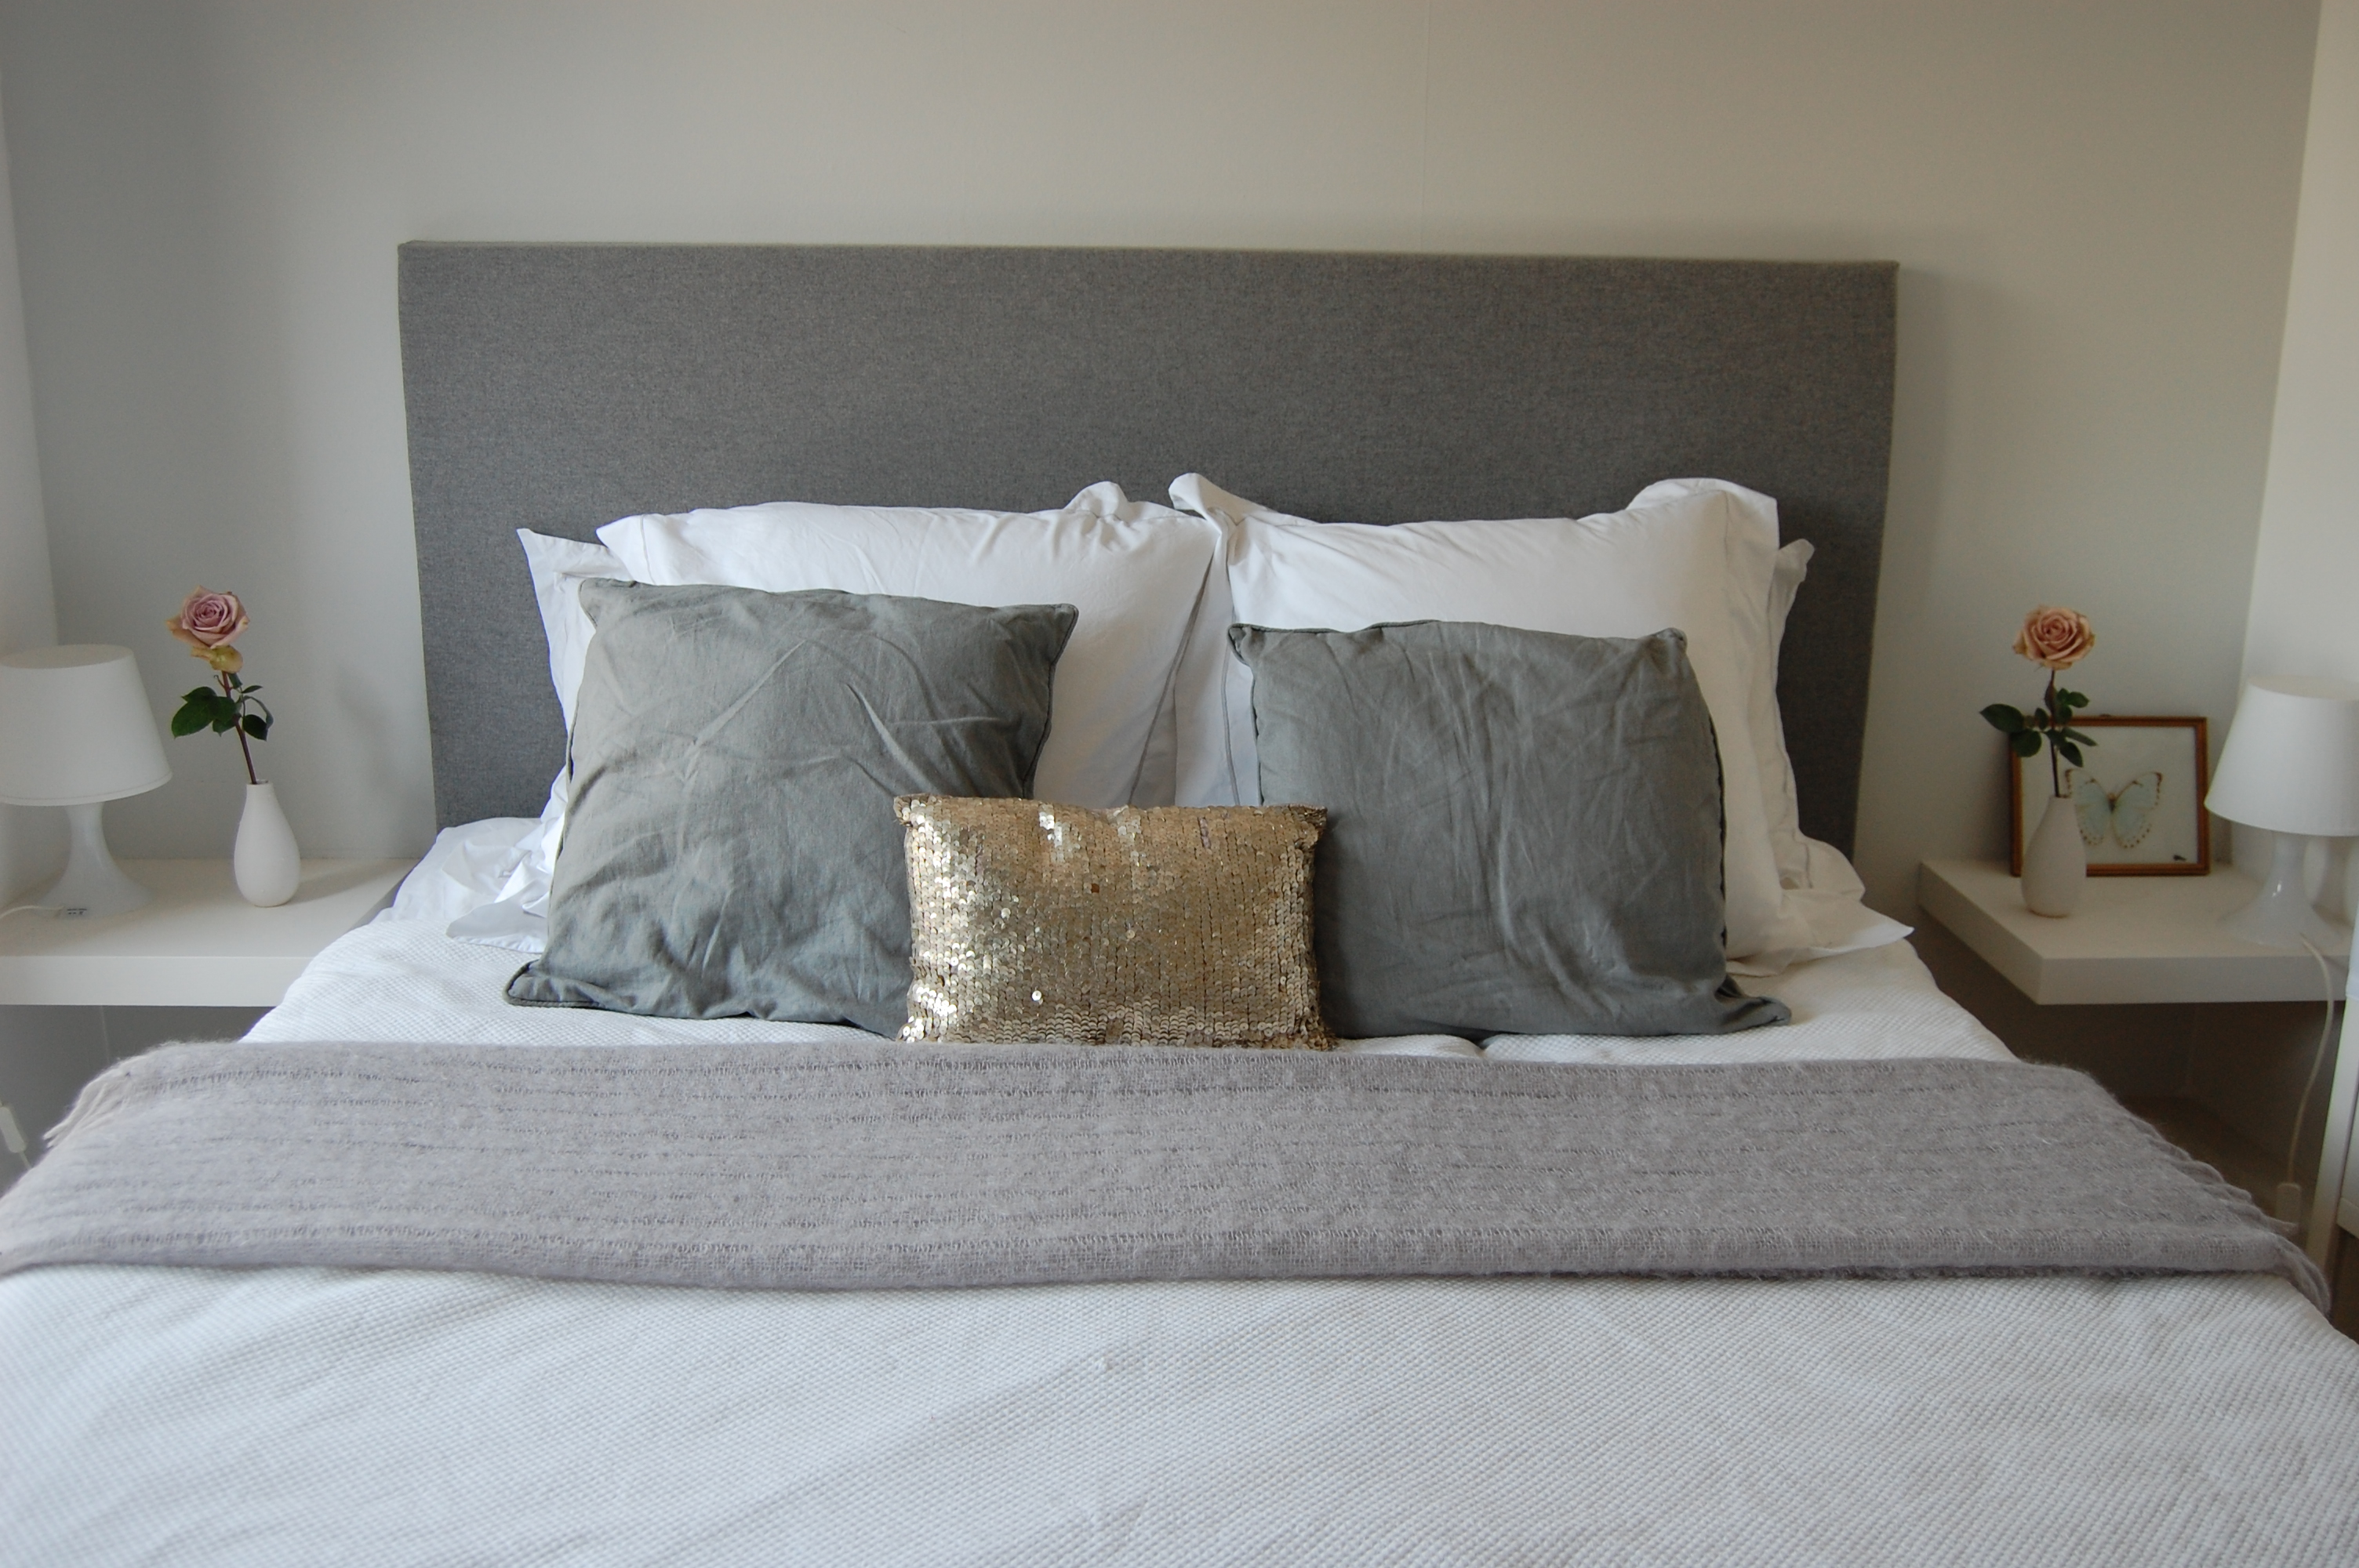 How to make a headboard emily wheeler How to make your own headboard